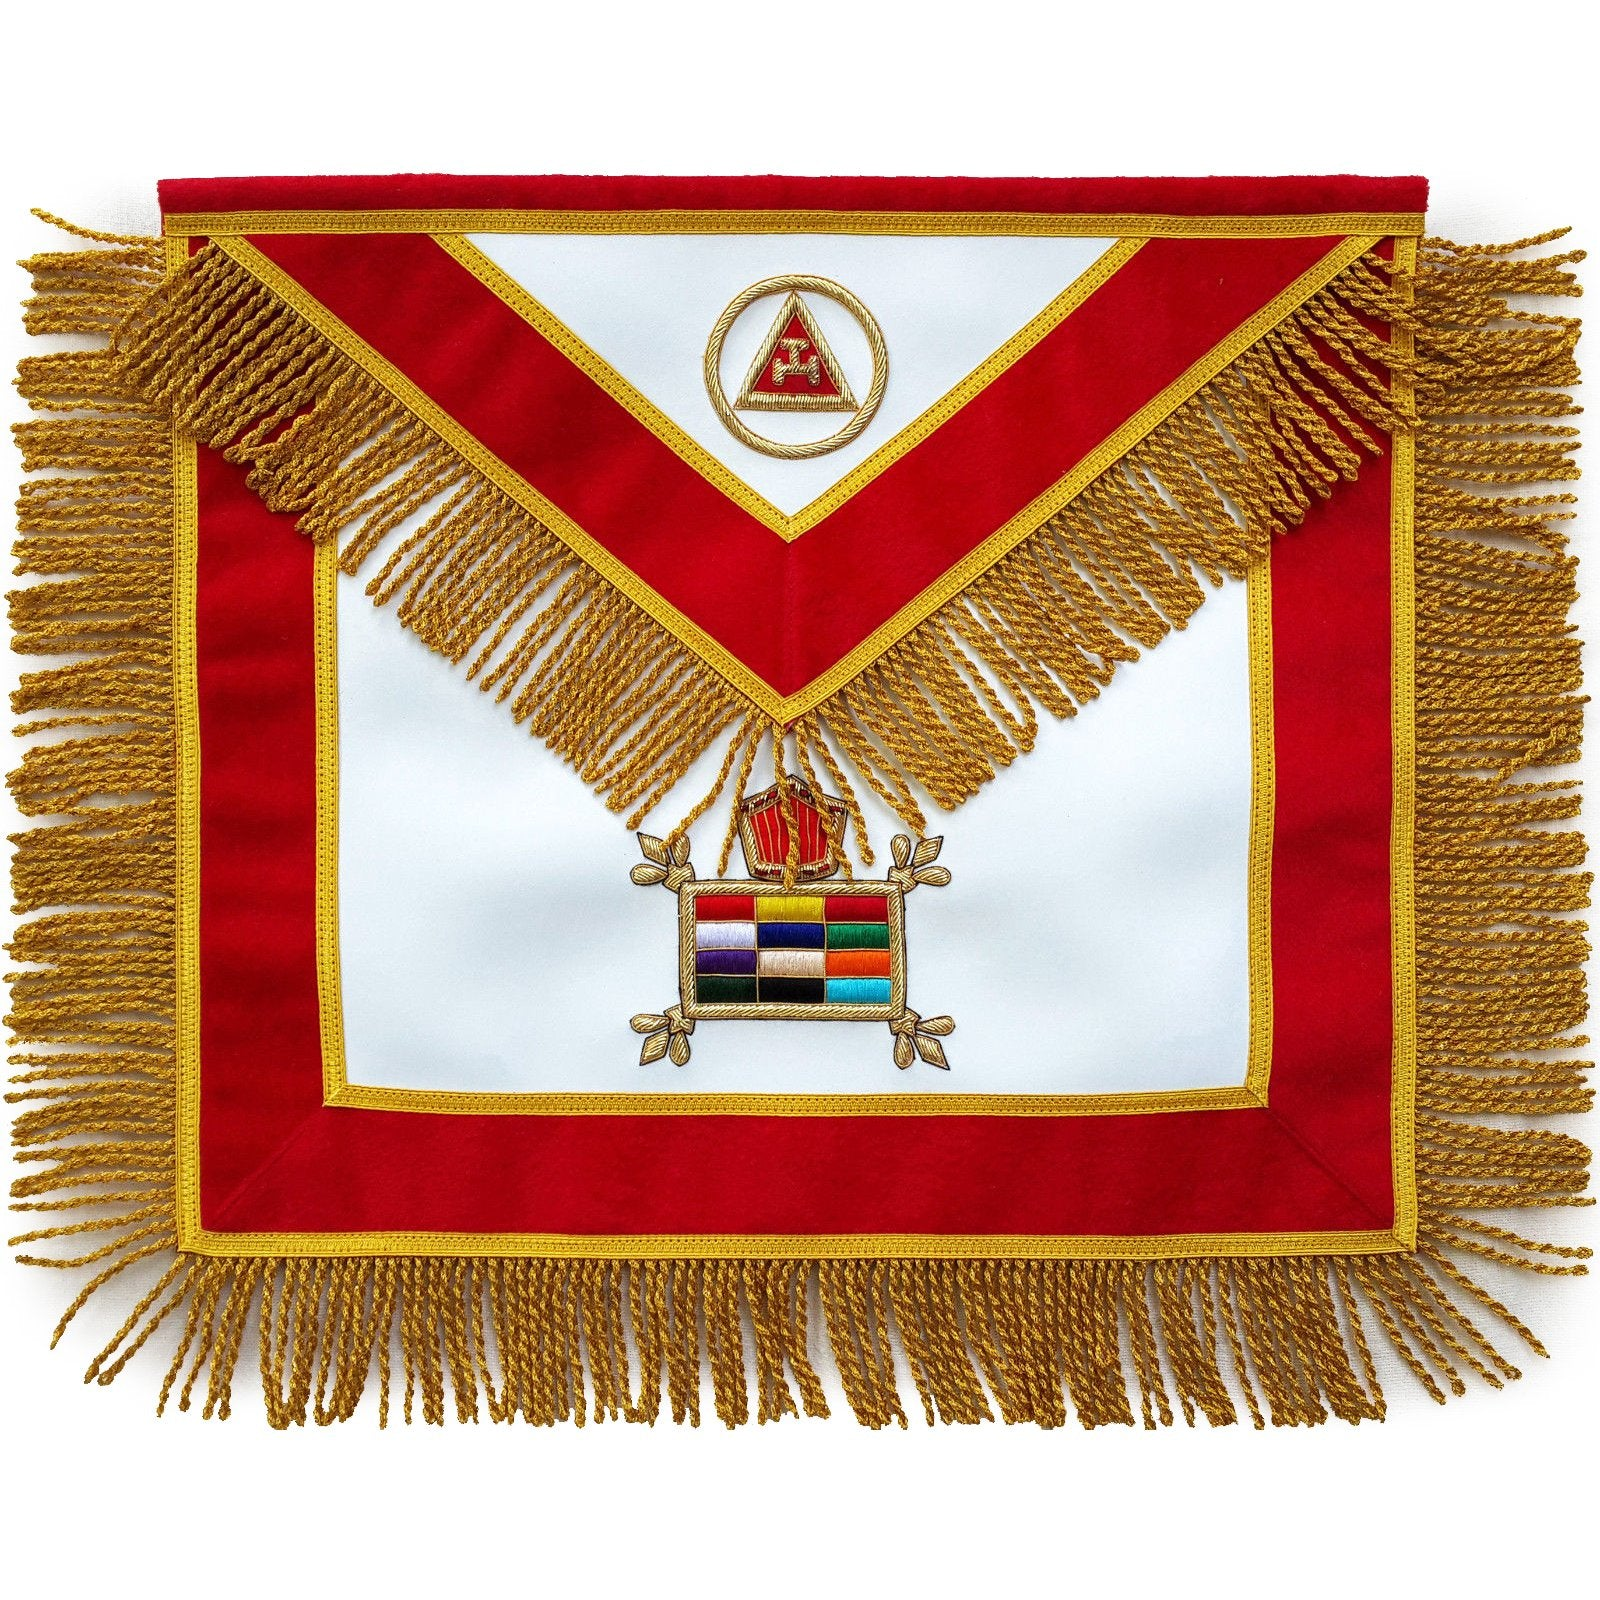 Masonic Massachusetts Chapter Apron Hand Embroidered - Bricks Masons